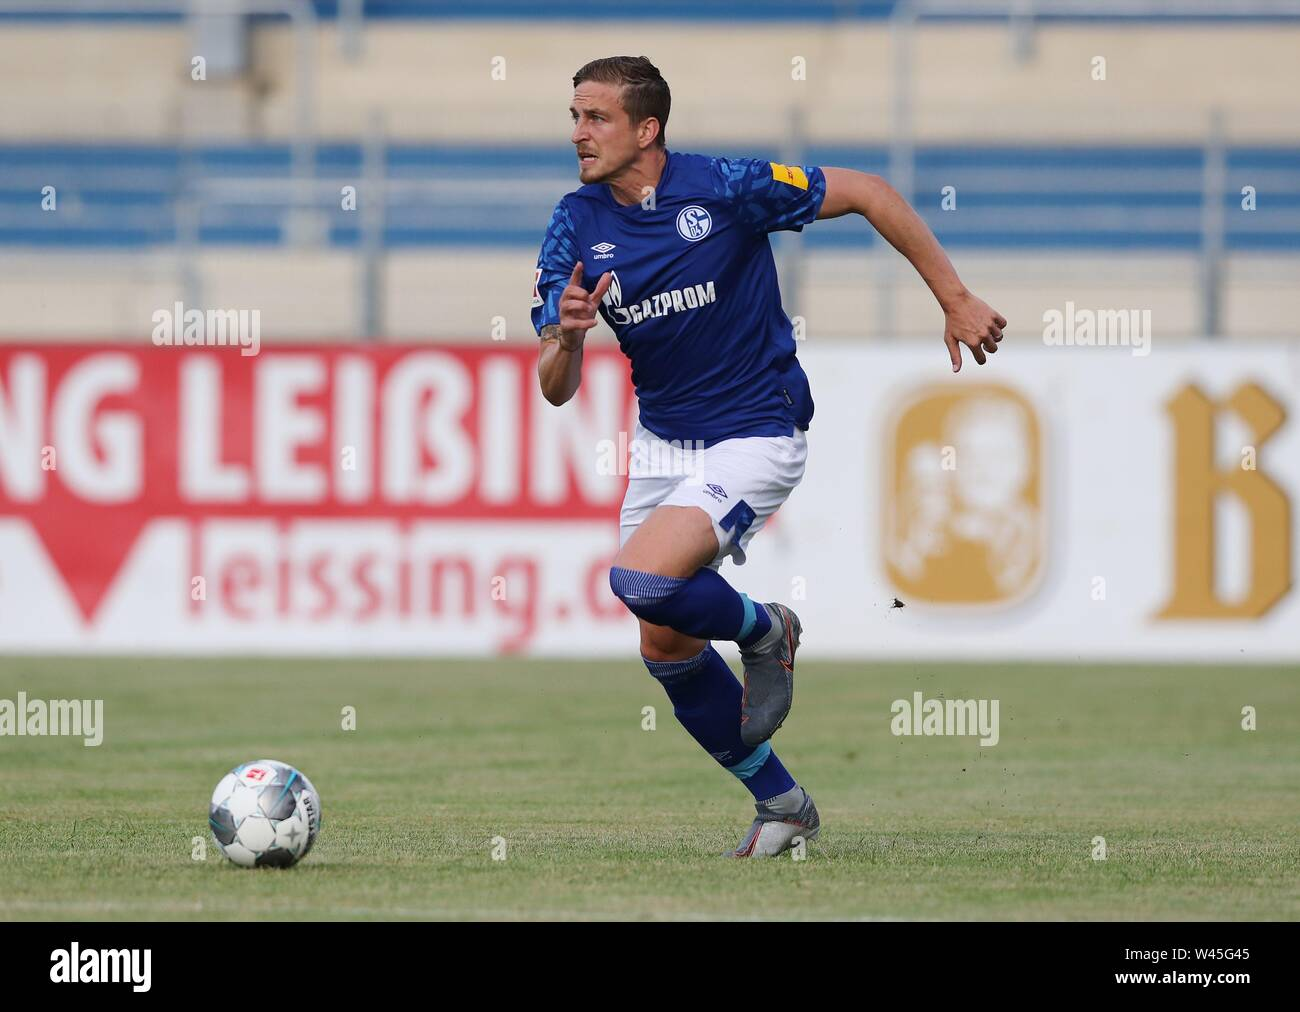 Lotte, Deutschland. 19th July, 2019. firo: 19.07.2019, football, 1.Bundesliga, season 2019/2020, friendly match, FC Schalke 04 - Norwich City Bastian OCZIPKA, Schalke, single action | usage worldwide Credit: dpa/Alamy Live News - Stock Image